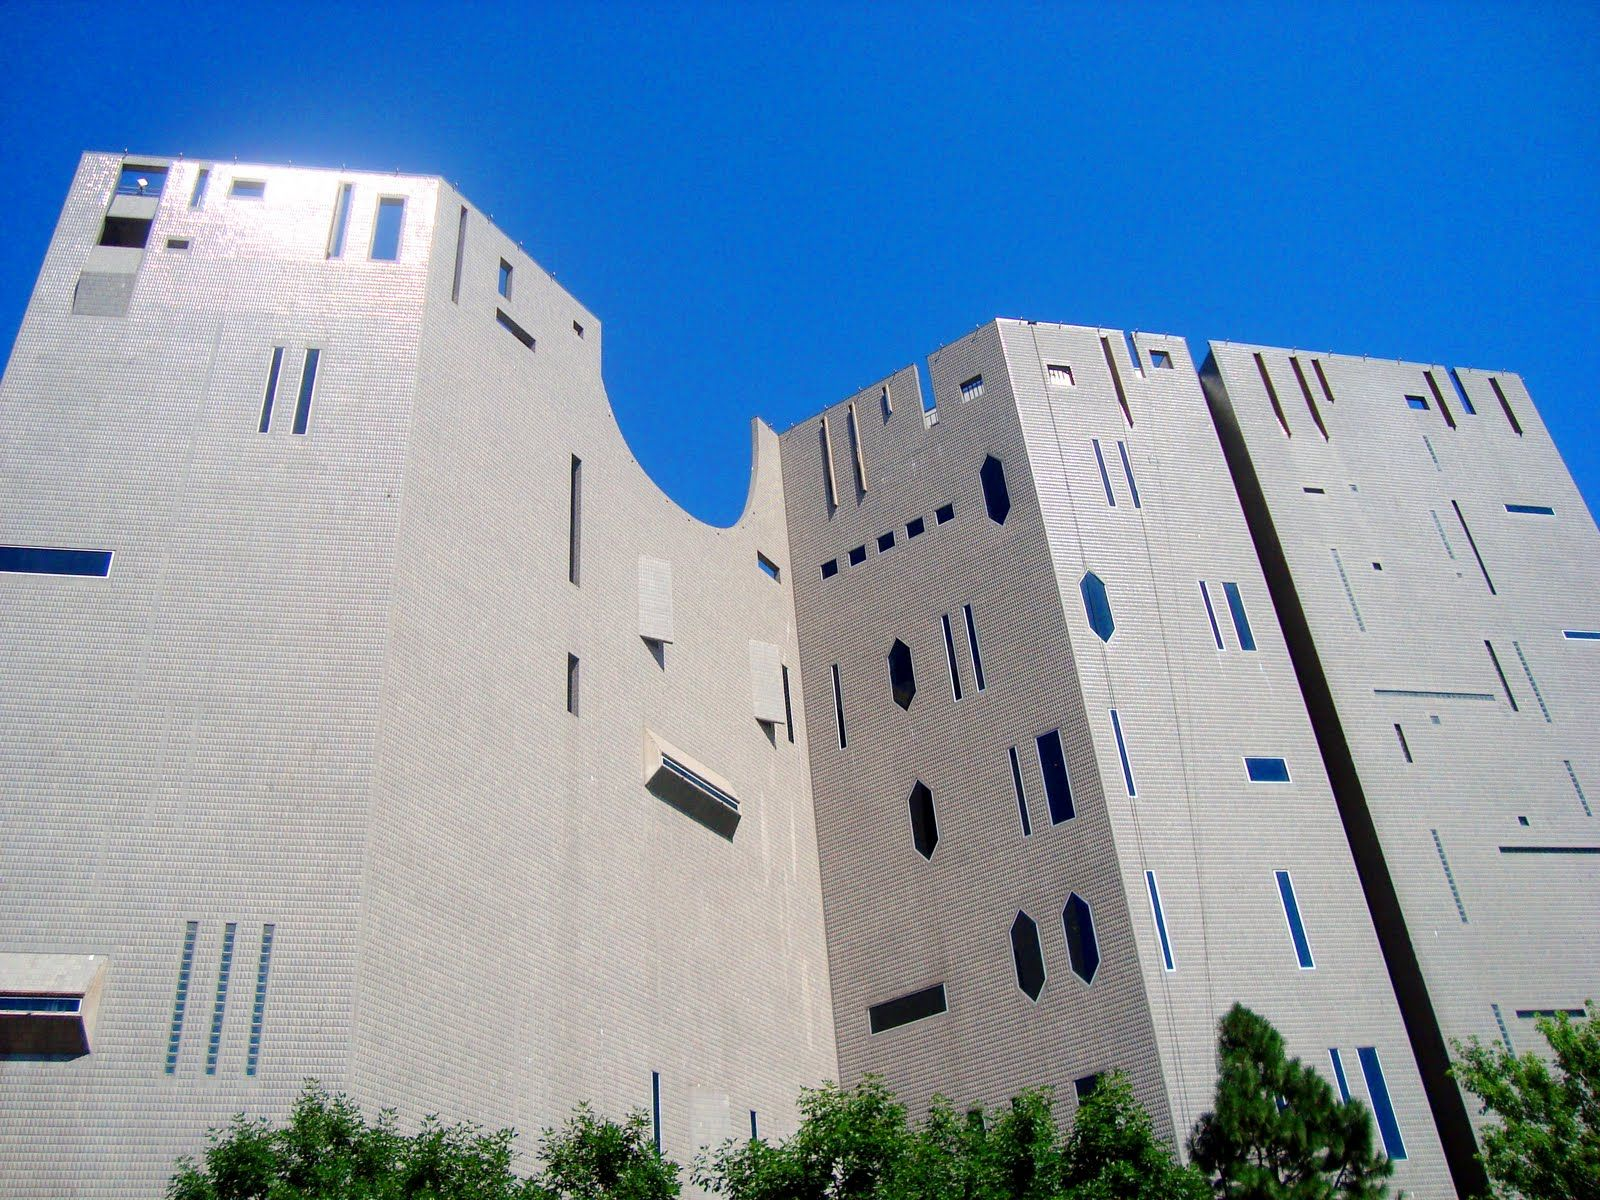 Gio Ponti North Building Denver Art Museum  A Look at